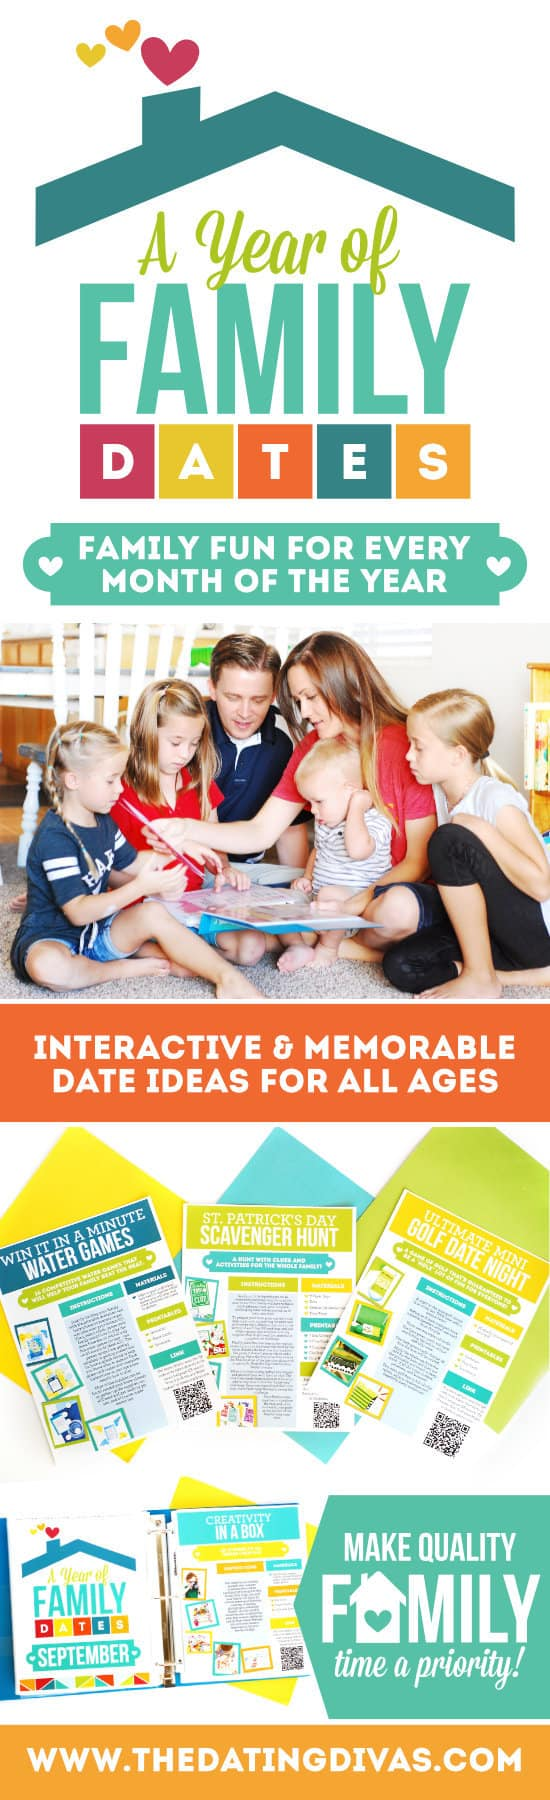 Taking time to be together as a family is so important. The Year of Family Date Night Activity Binder is perfect for busy families wanting to connect!